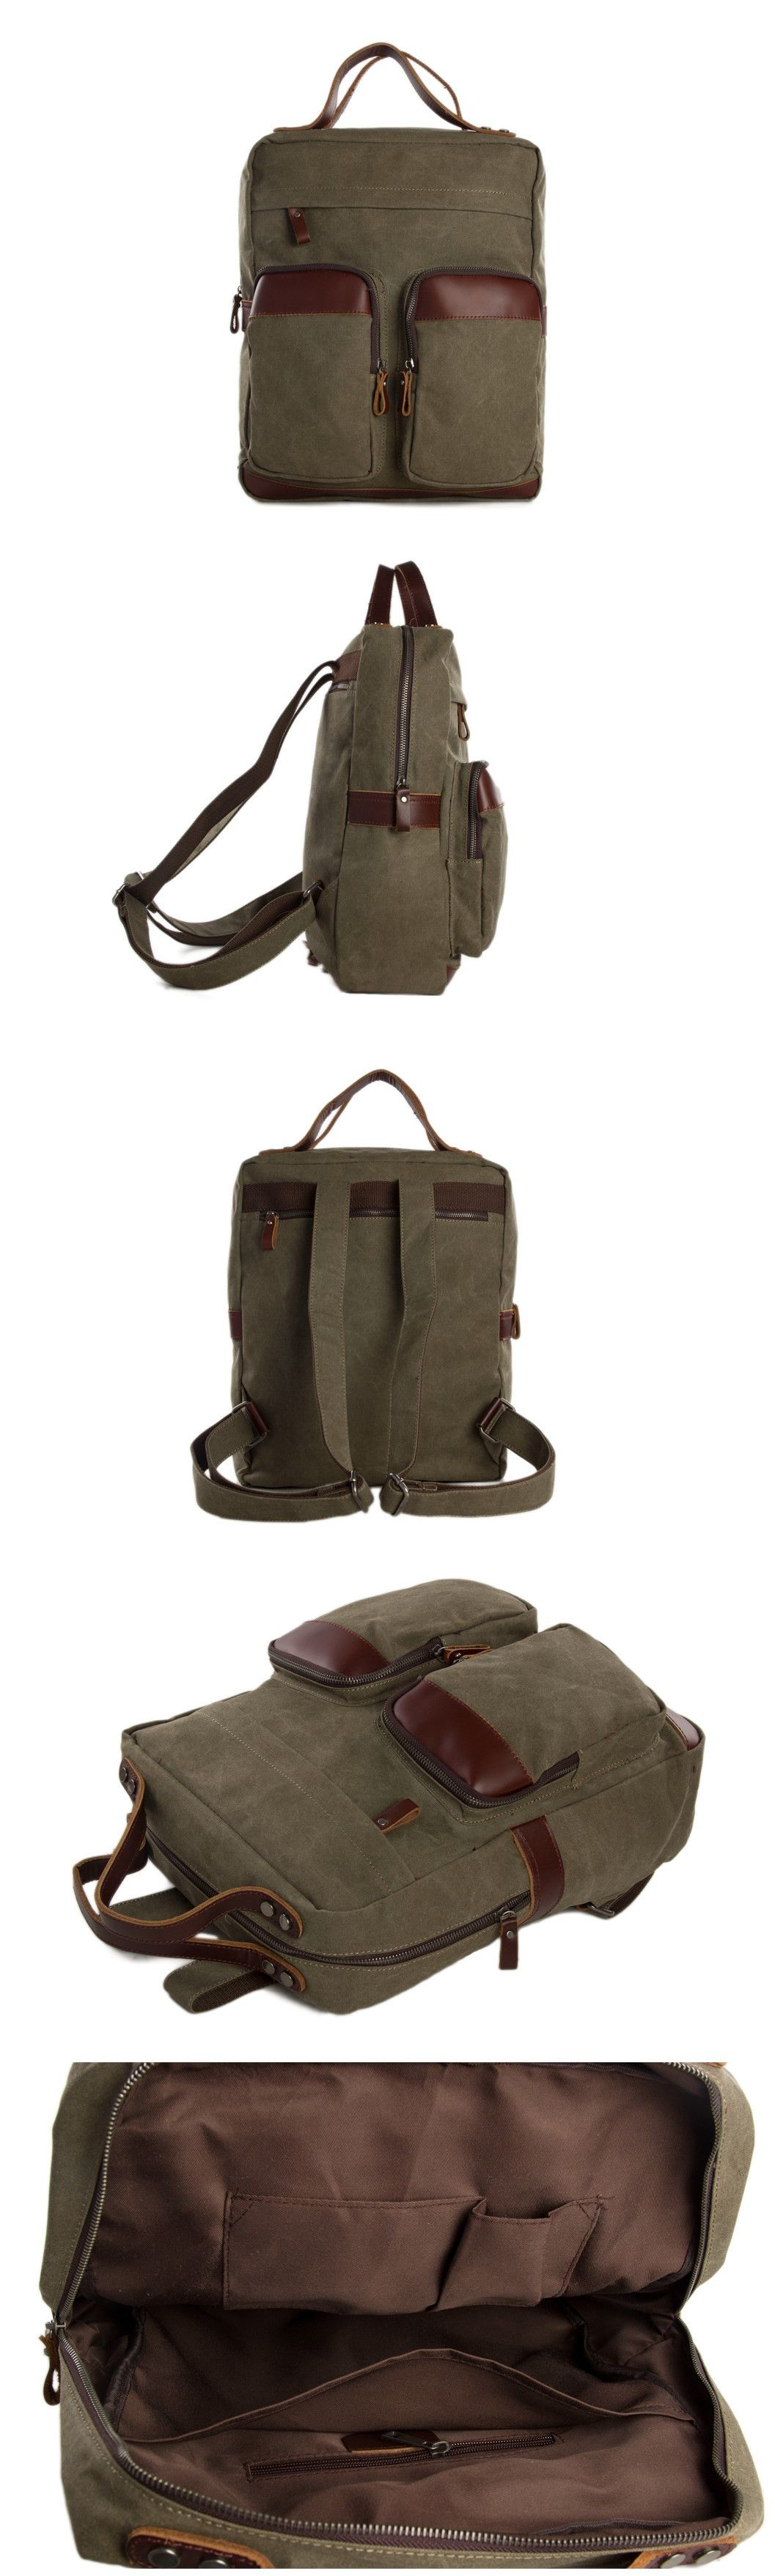 dbbdb8d45495 Canvas Leather Backpack